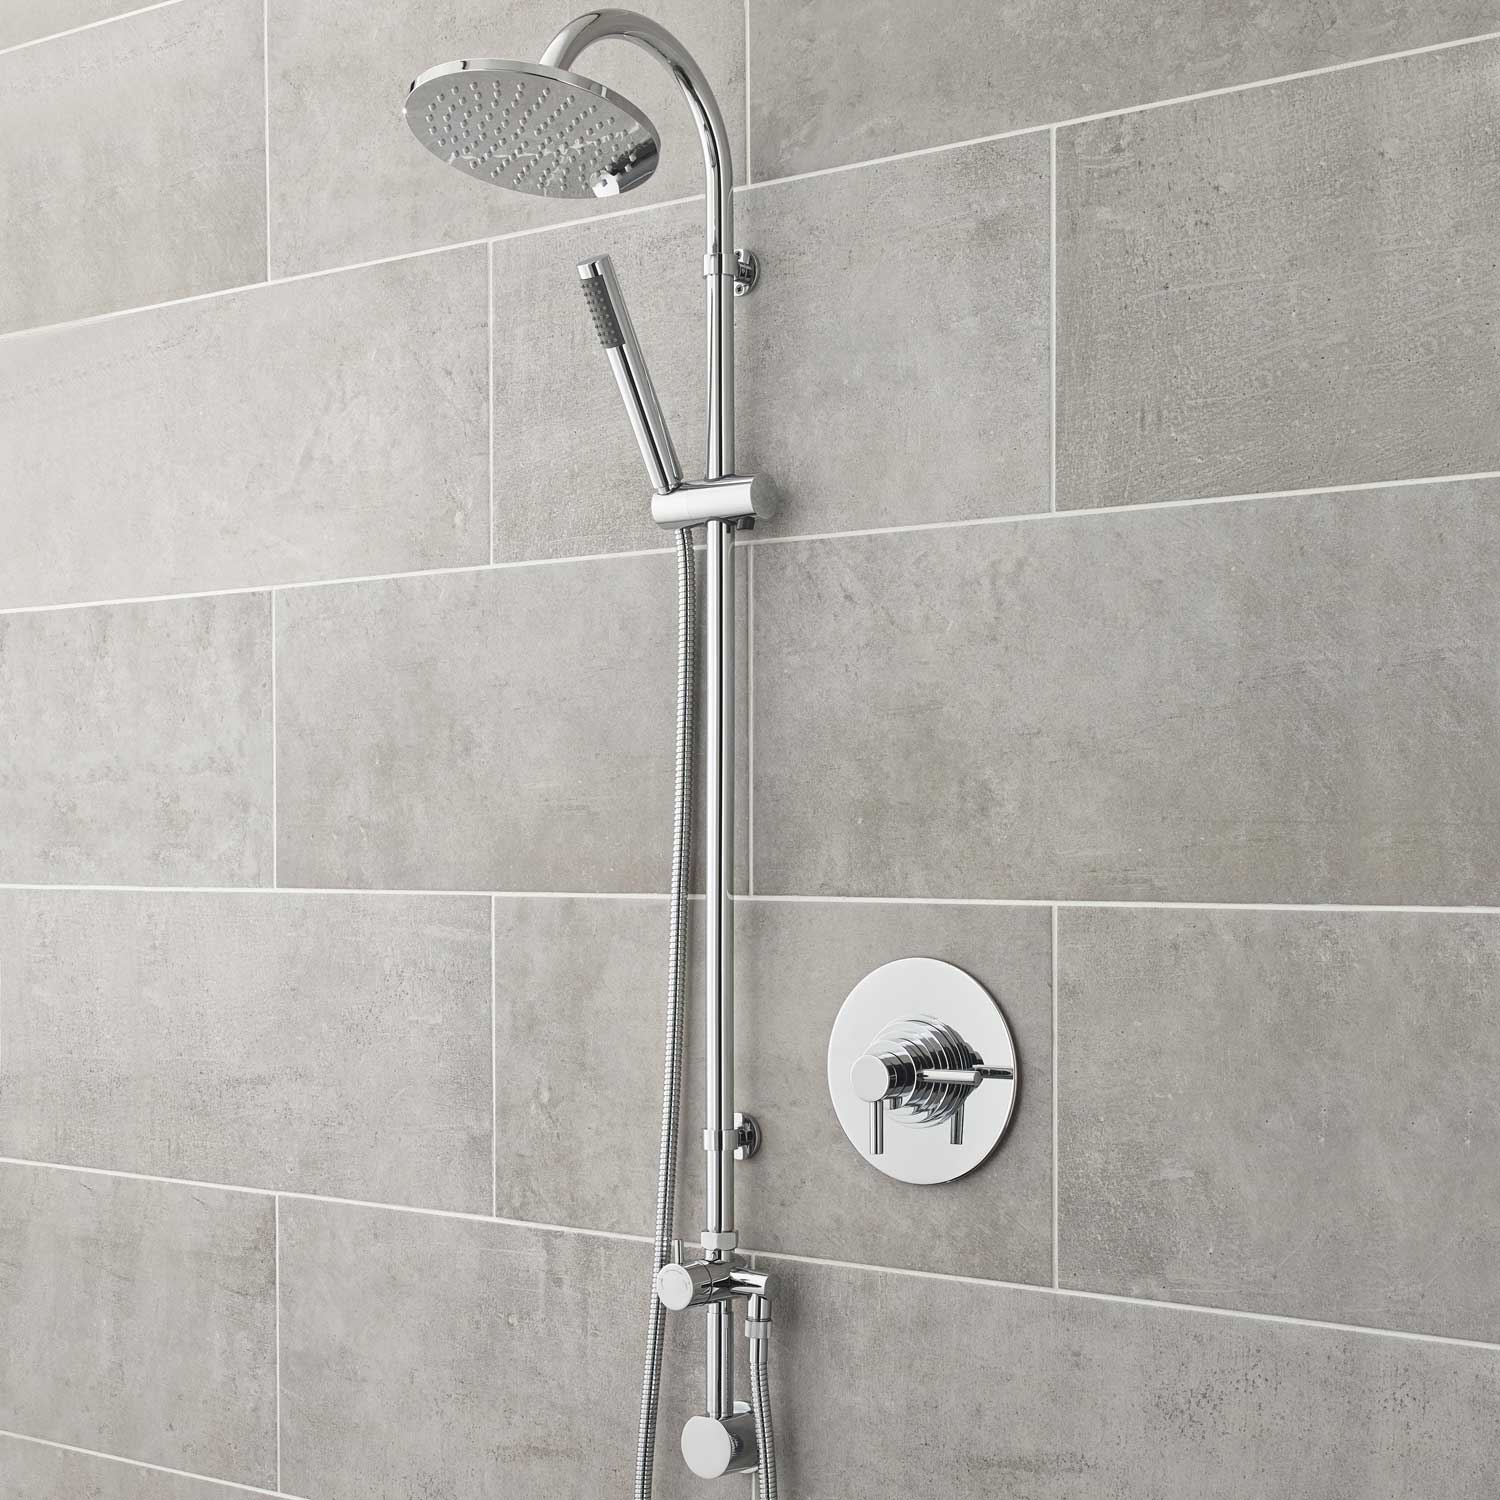 Hudson Reed Tec Dual Concealed Shower Valve Concentric Dual Handle - Chrome